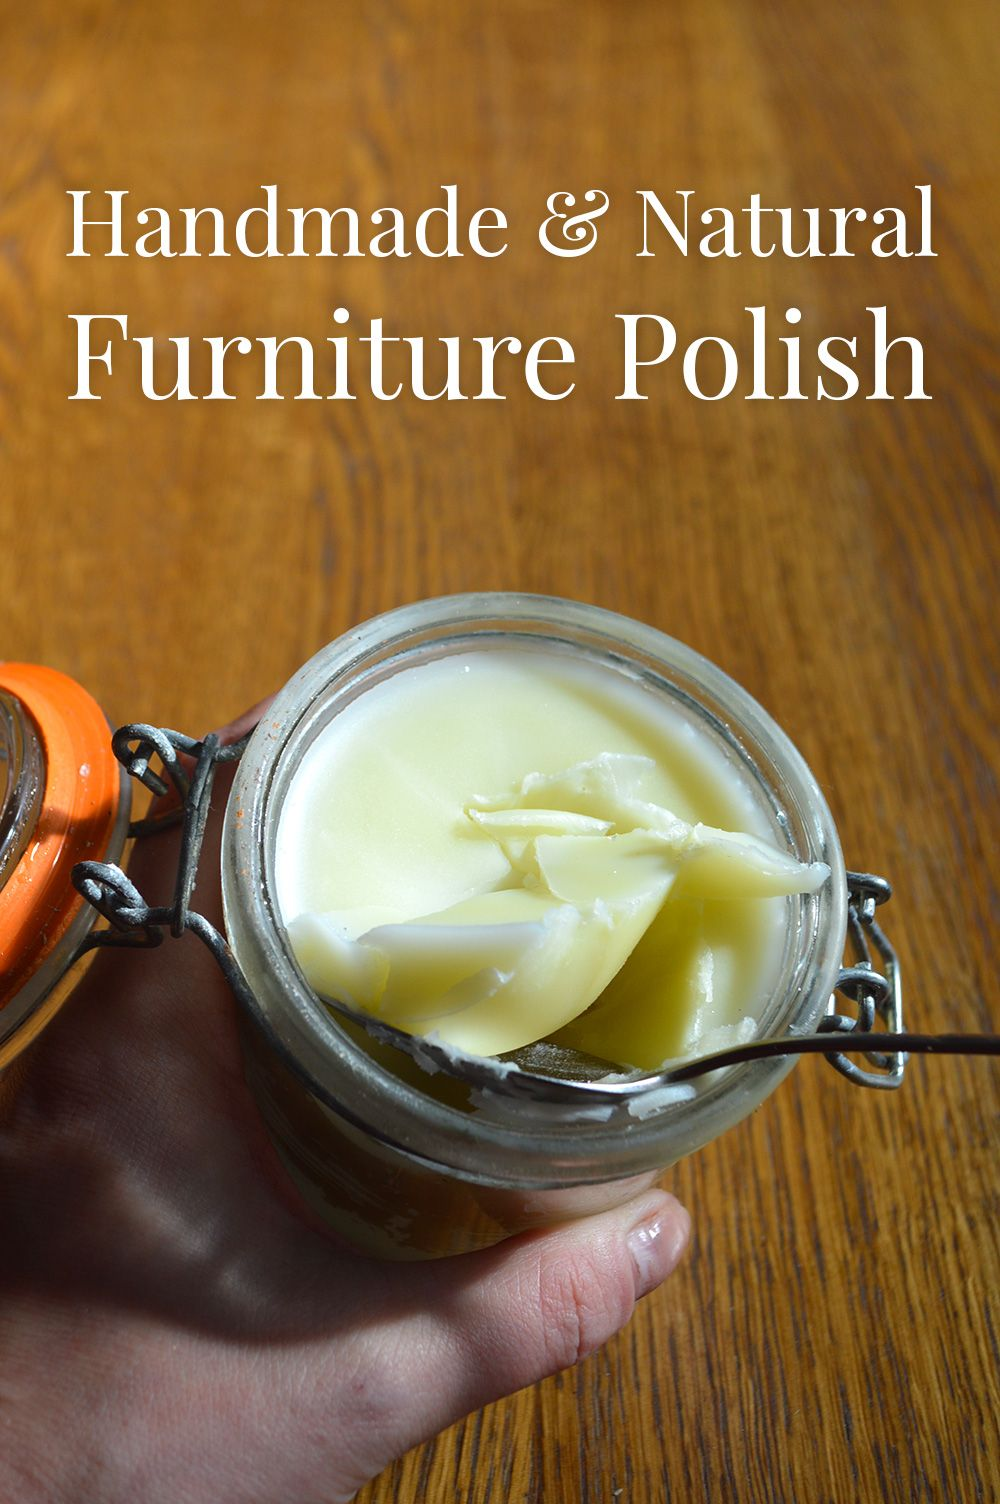 25+ Unique Beeswax Polish Ideas On Pinterest | DIY Furniture Polish Beeswax,  Beeswax Furniture Polish And DIY Natural Furniture Polish